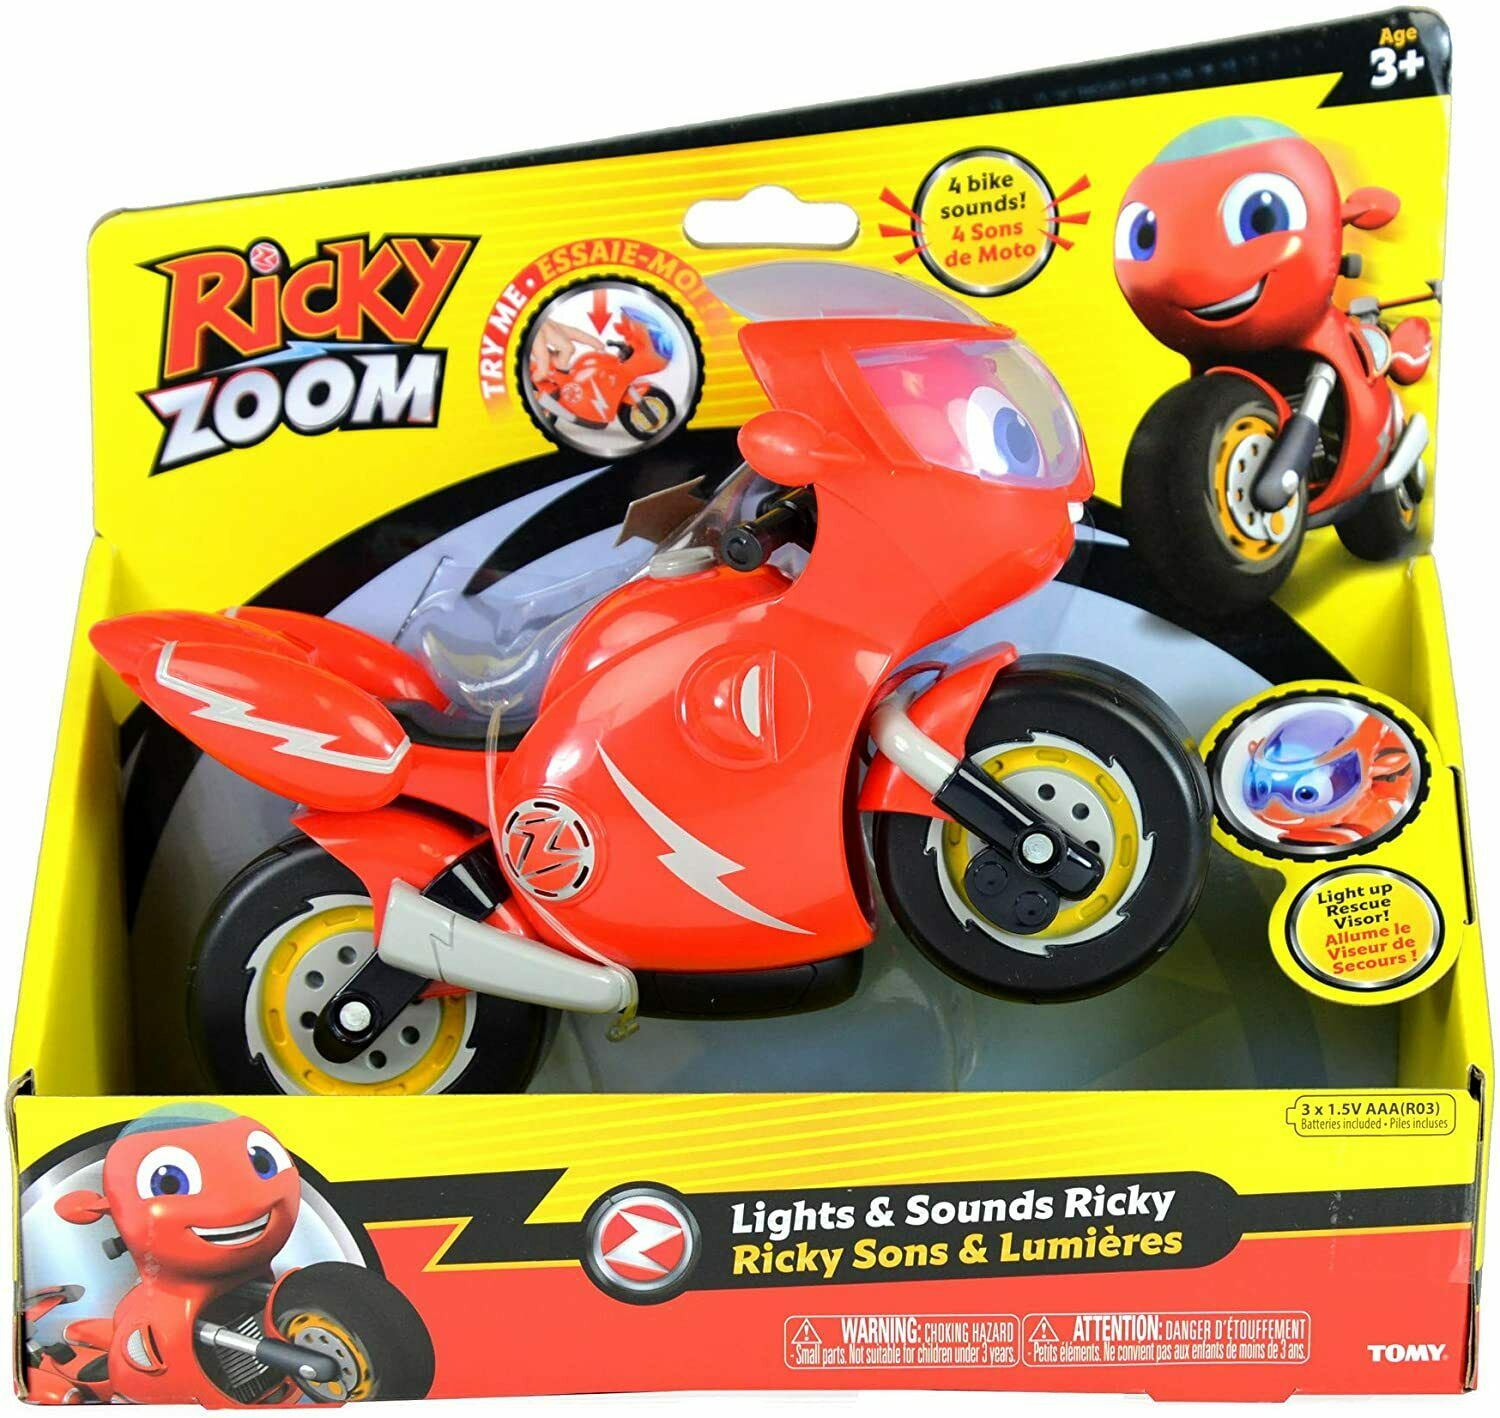 Ricky Zoom Lights & Sounds Ricky Includes 8 Sounds & Phrases For Ages 3+